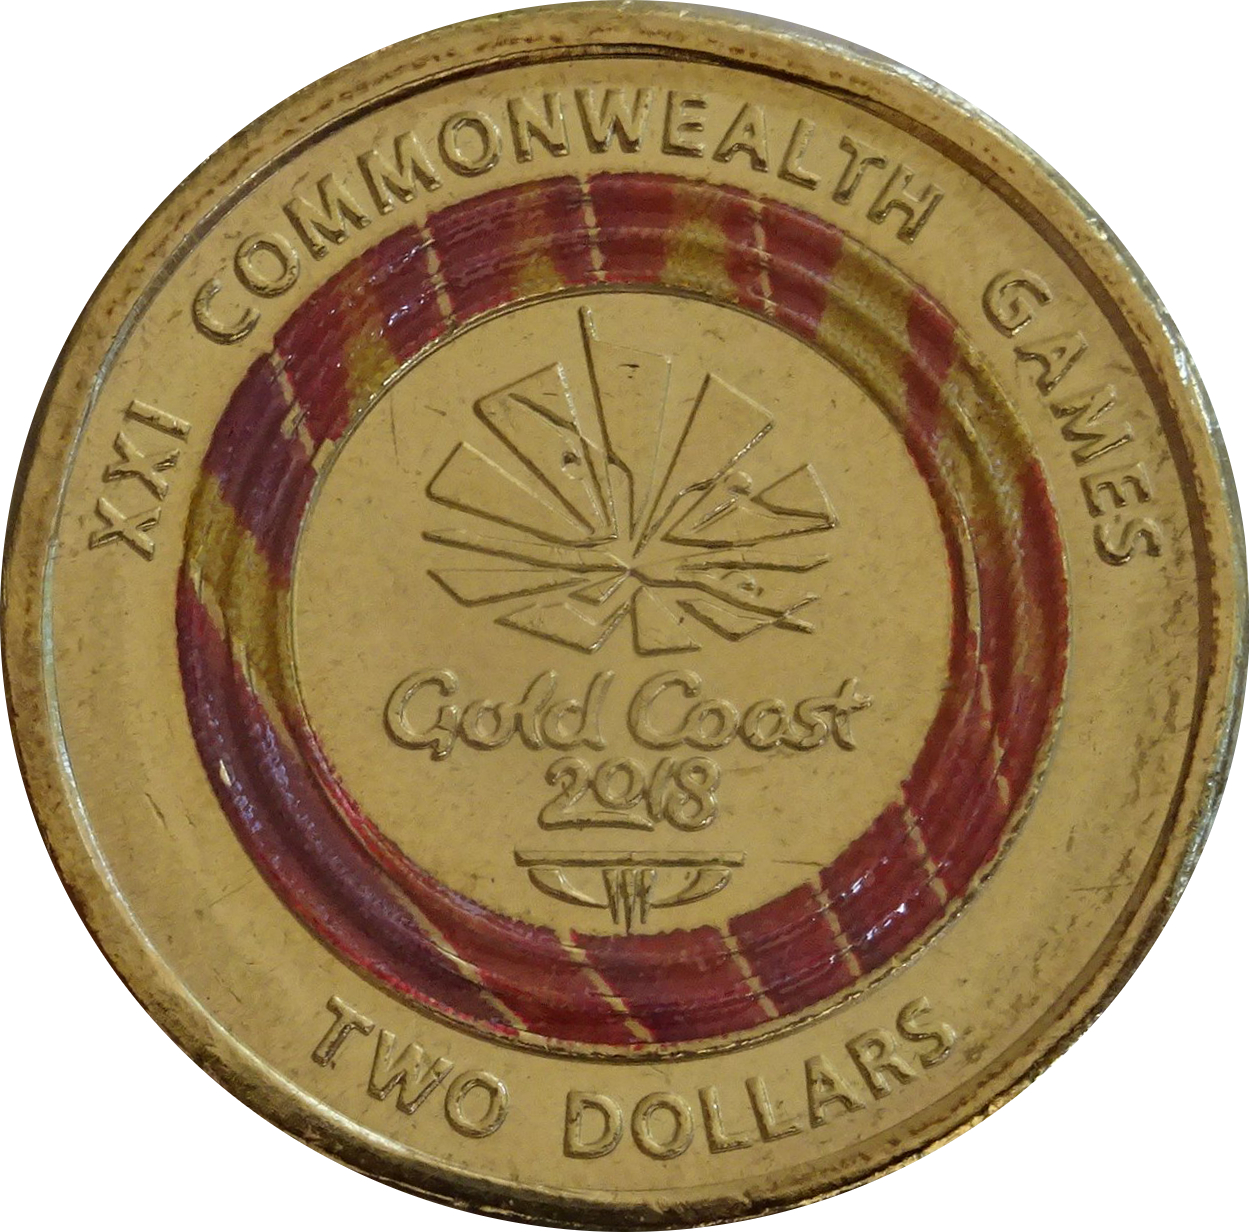 Rare $2 Dollar Coin  unc Commonwealth Games Limited Edition 2018 AUS